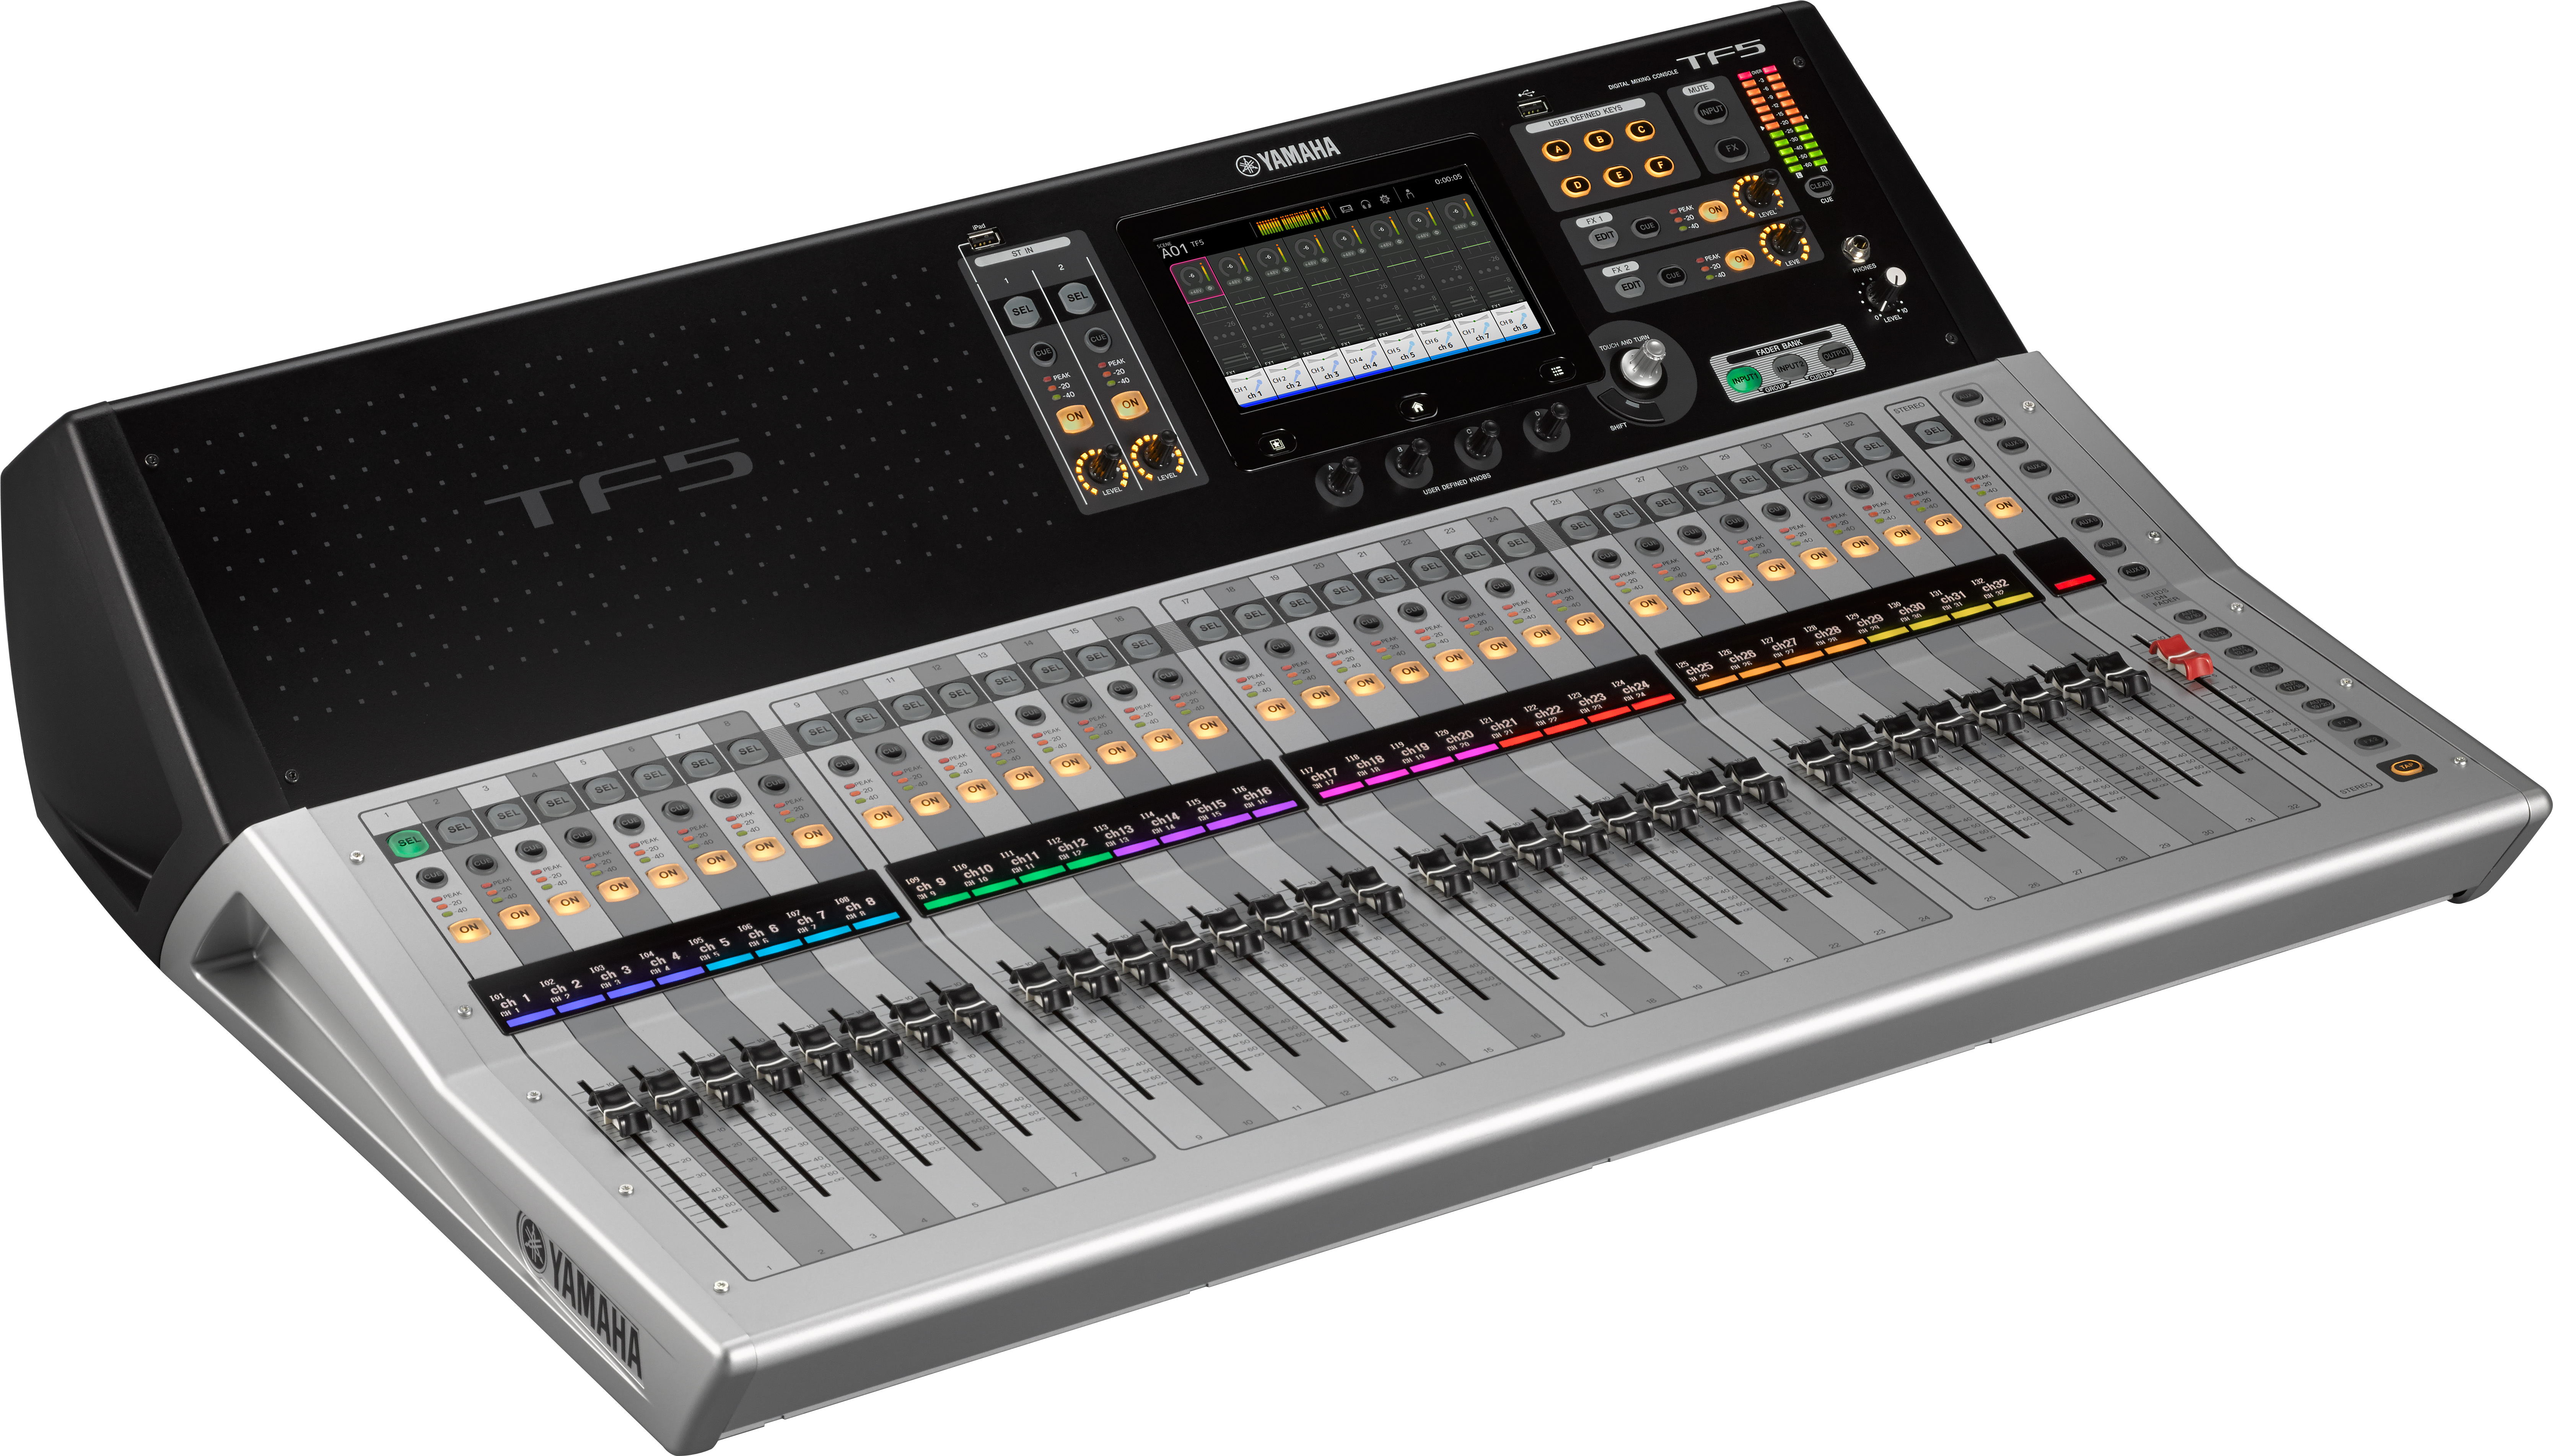 Design meets intuition yamaha tf series digital consoles for Yamaha tf series